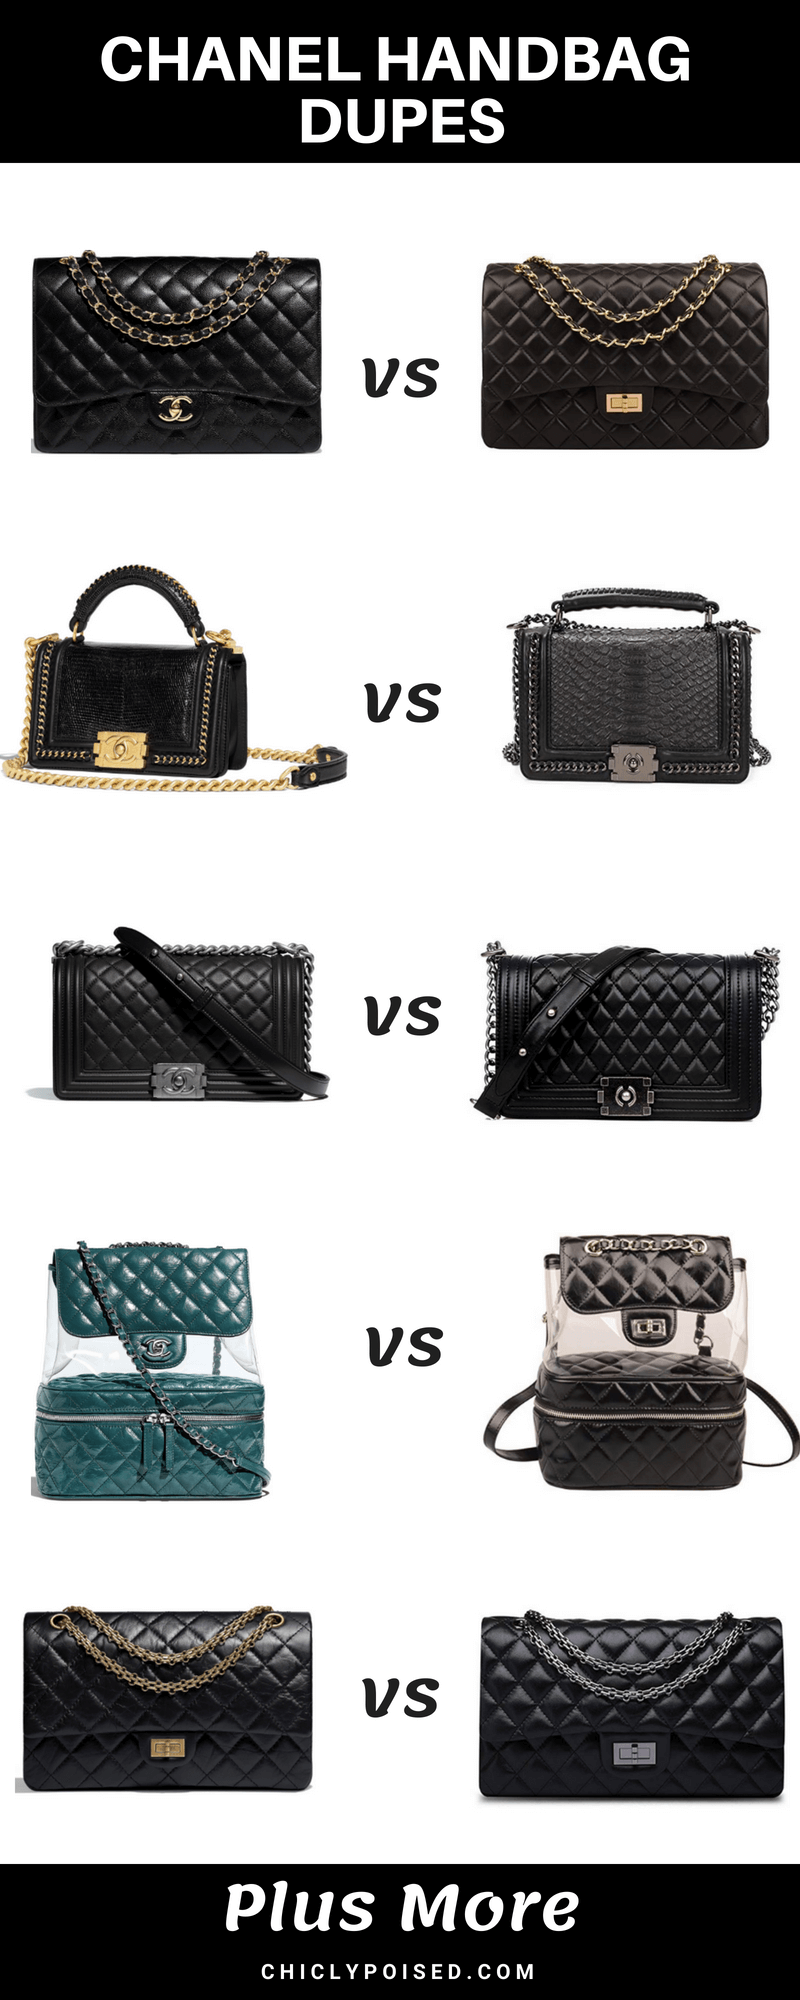 Amazing Chanel Handbags Dupes You Didn't Know About